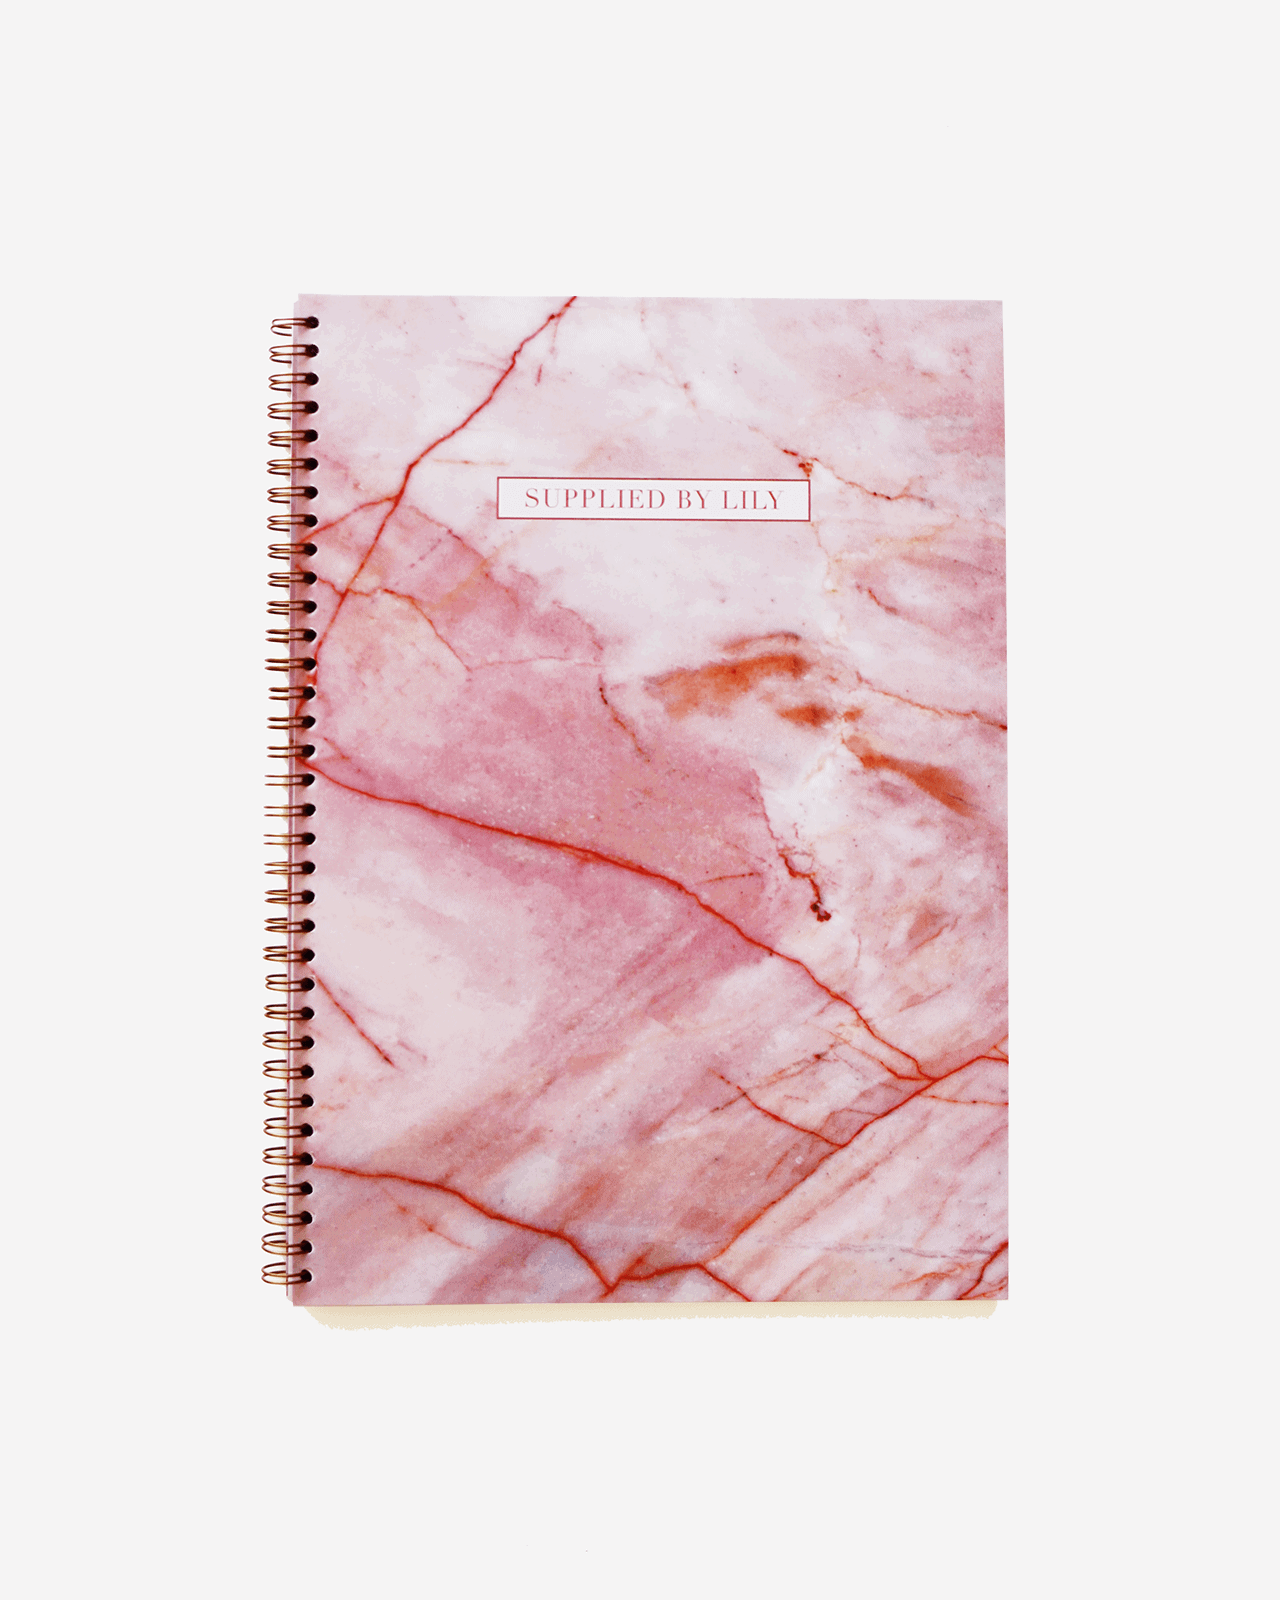 Supplied by Lily A4 Spiral Notebook in Luxurious Rose Quartz